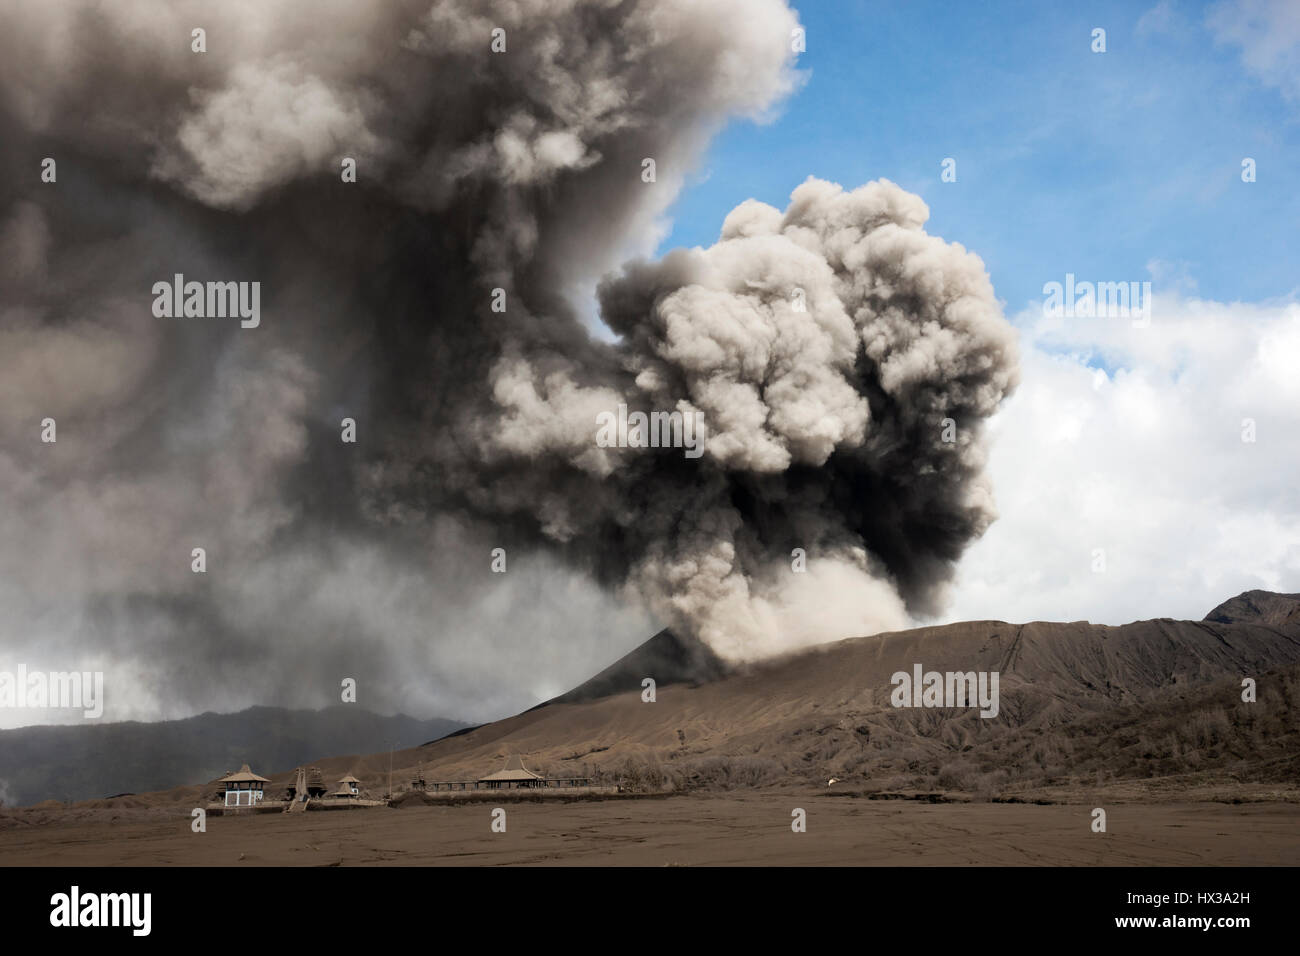 Grey smoke coming out of an active volcano filling the sky at the Tengger Semeru National Park in East Java, Indonesia. Stock Photo